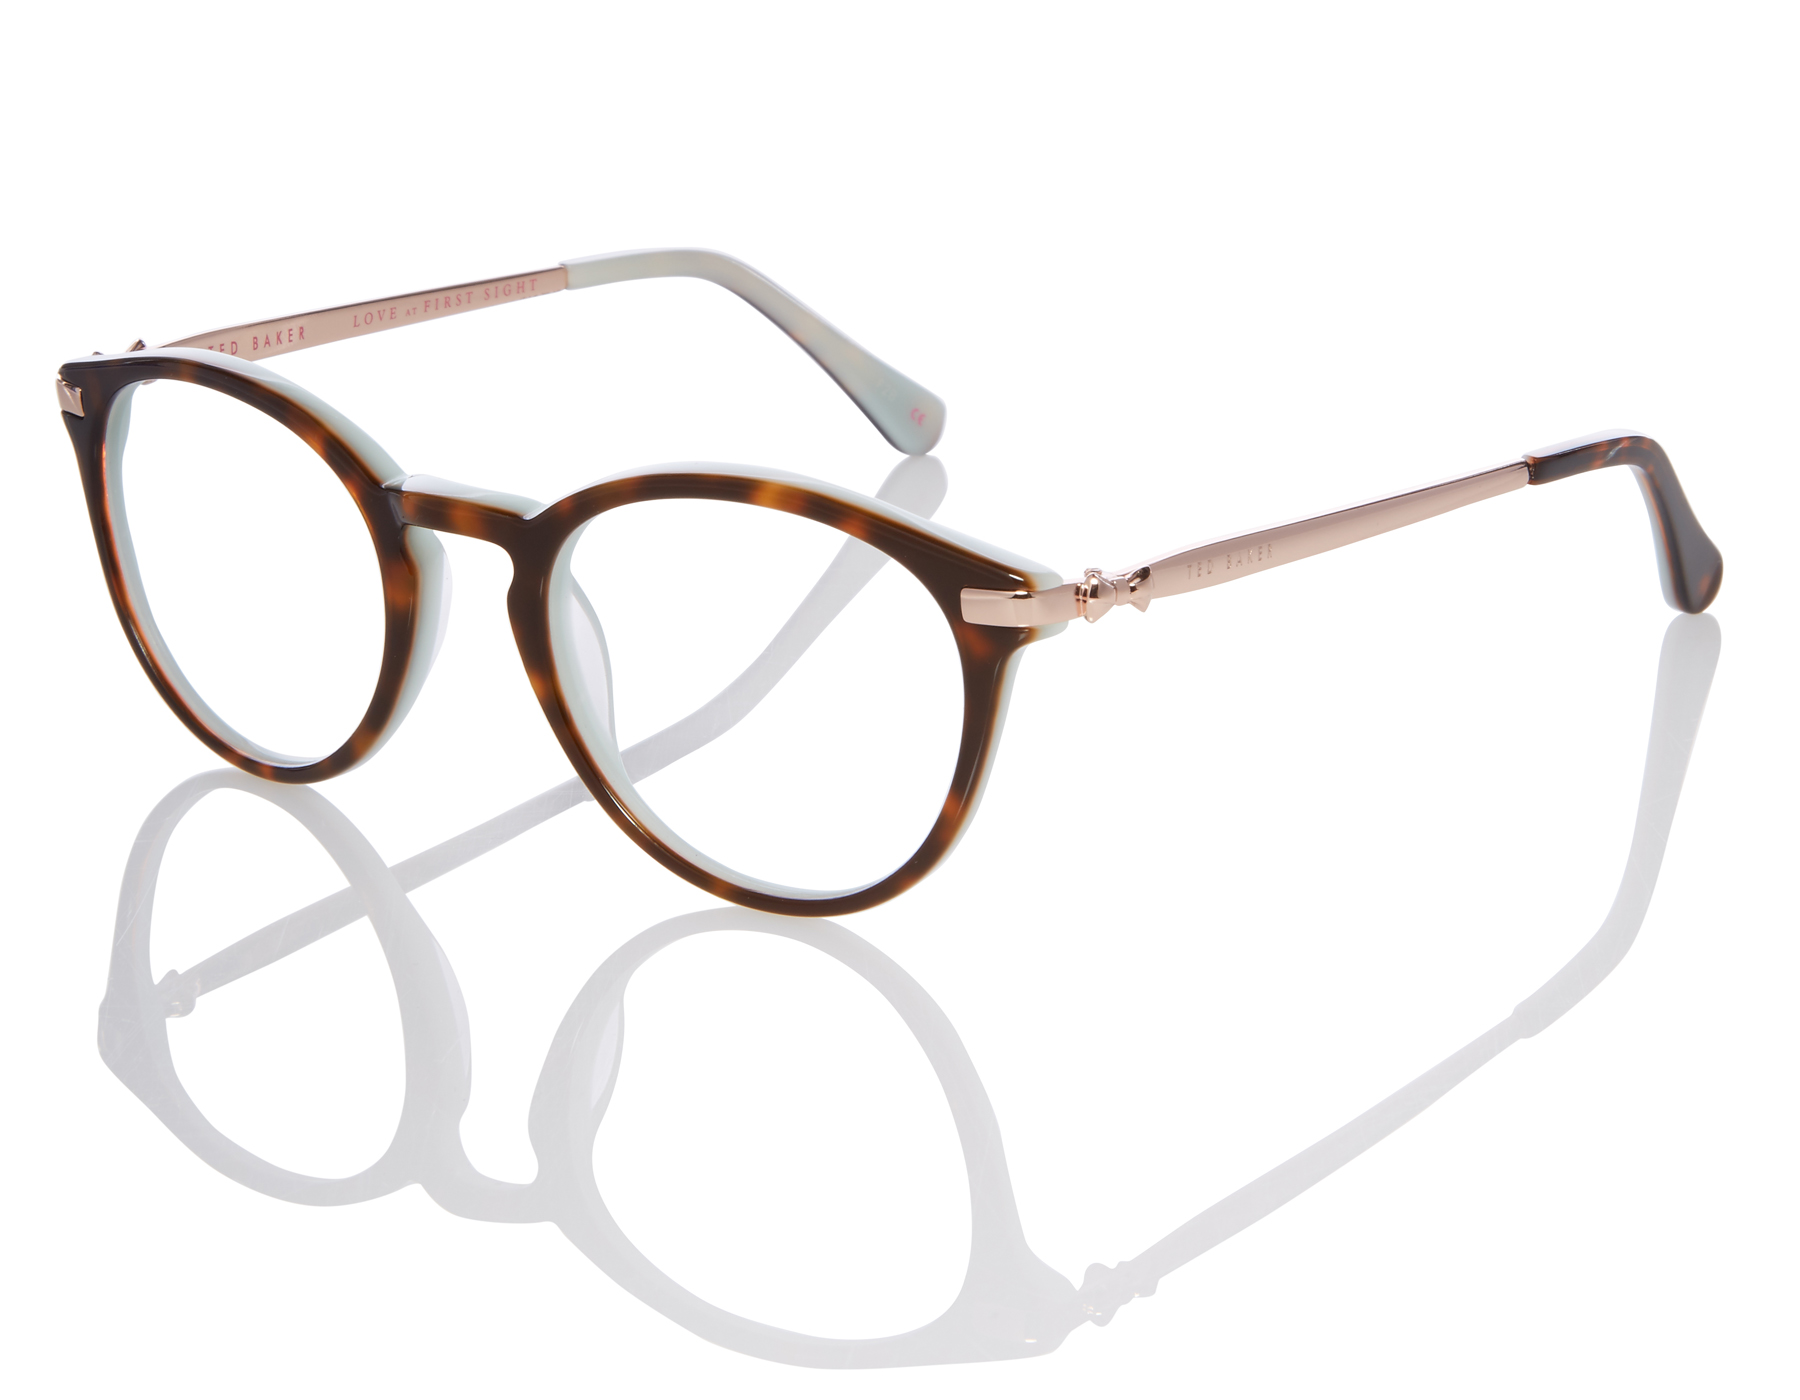 ae6adf941e Details about NEW Ted Baker Val TB 9132 521 49mm Tortoise Mint Optical Eyeglasses  Frames